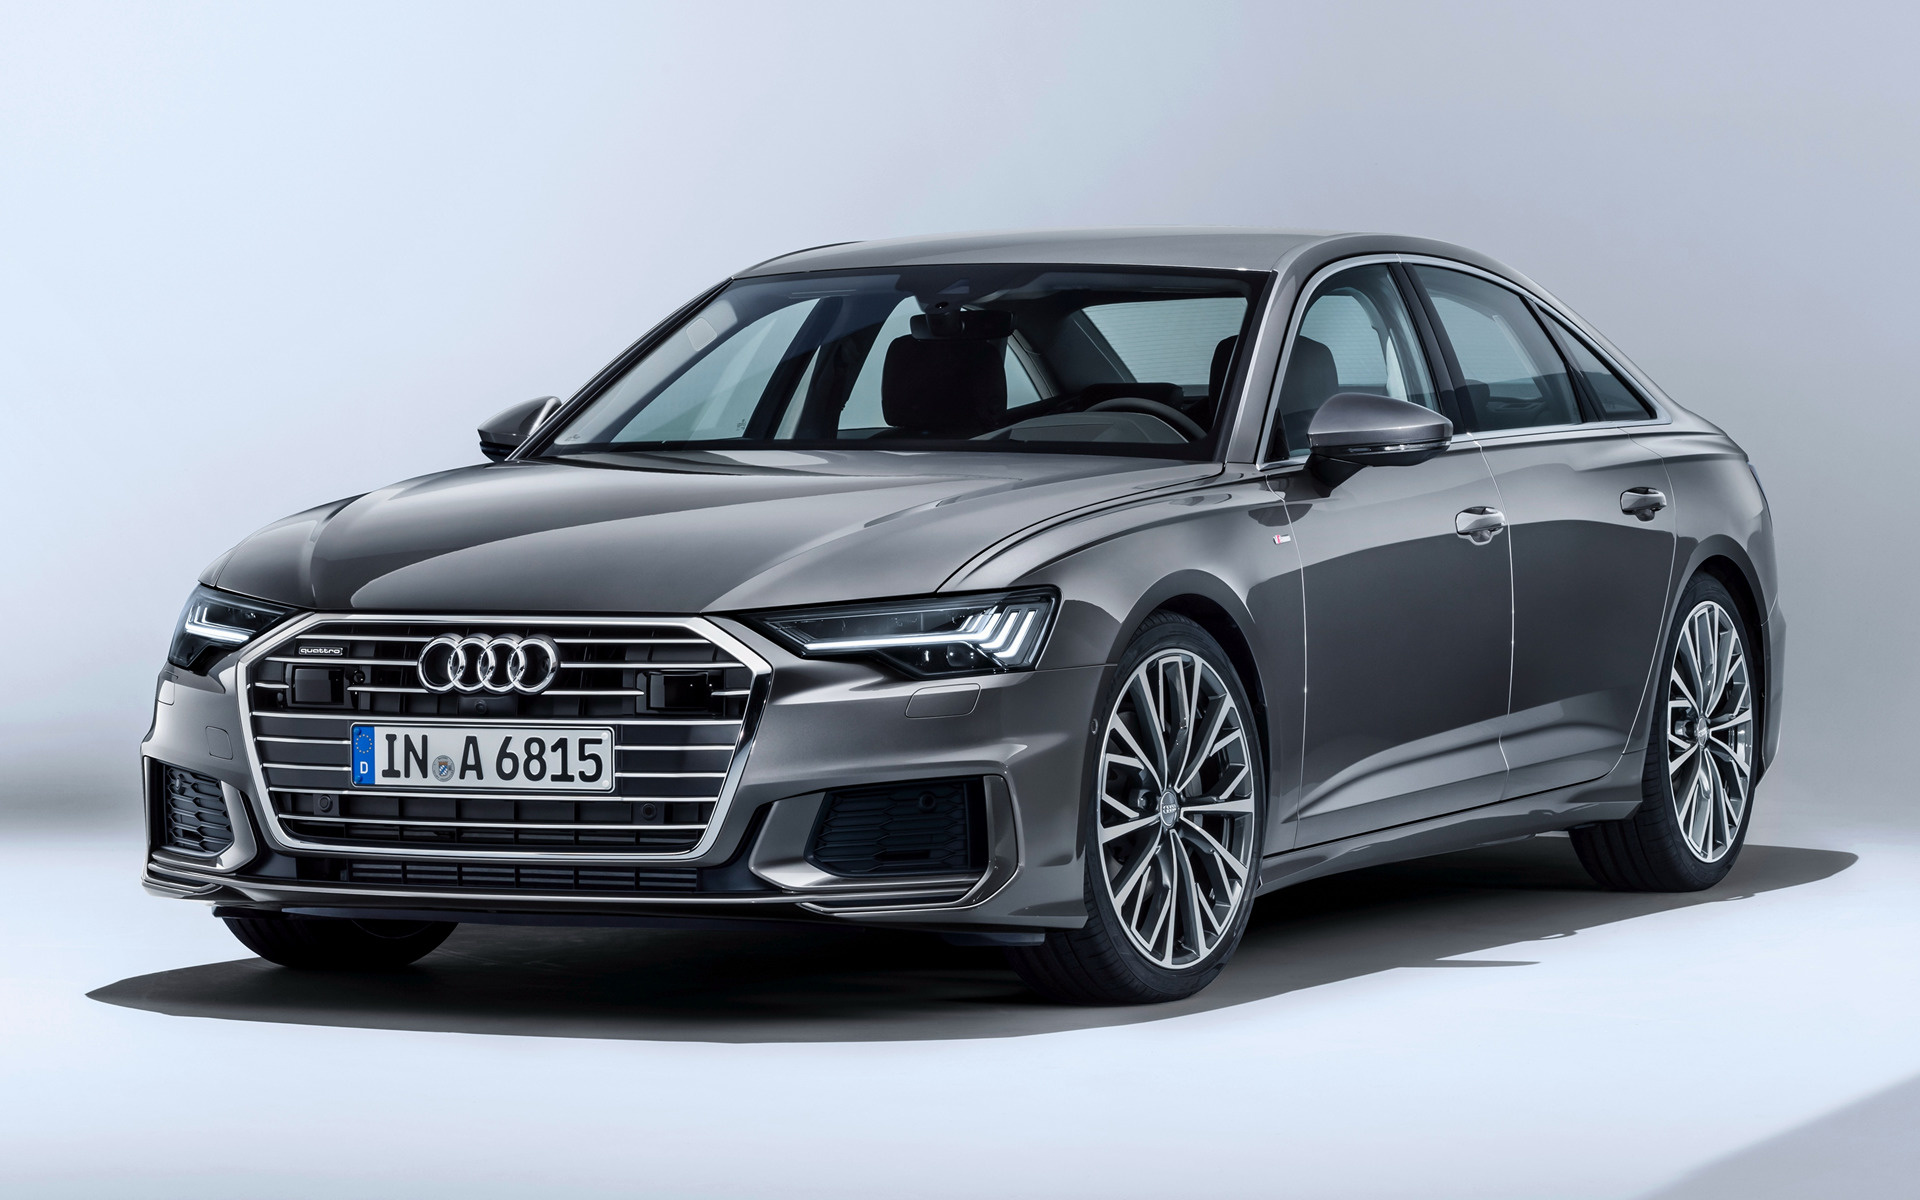 audi a6 sedan s line 2018 wallpapers and hd images car. Black Bedroom Furniture Sets. Home Design Ideas